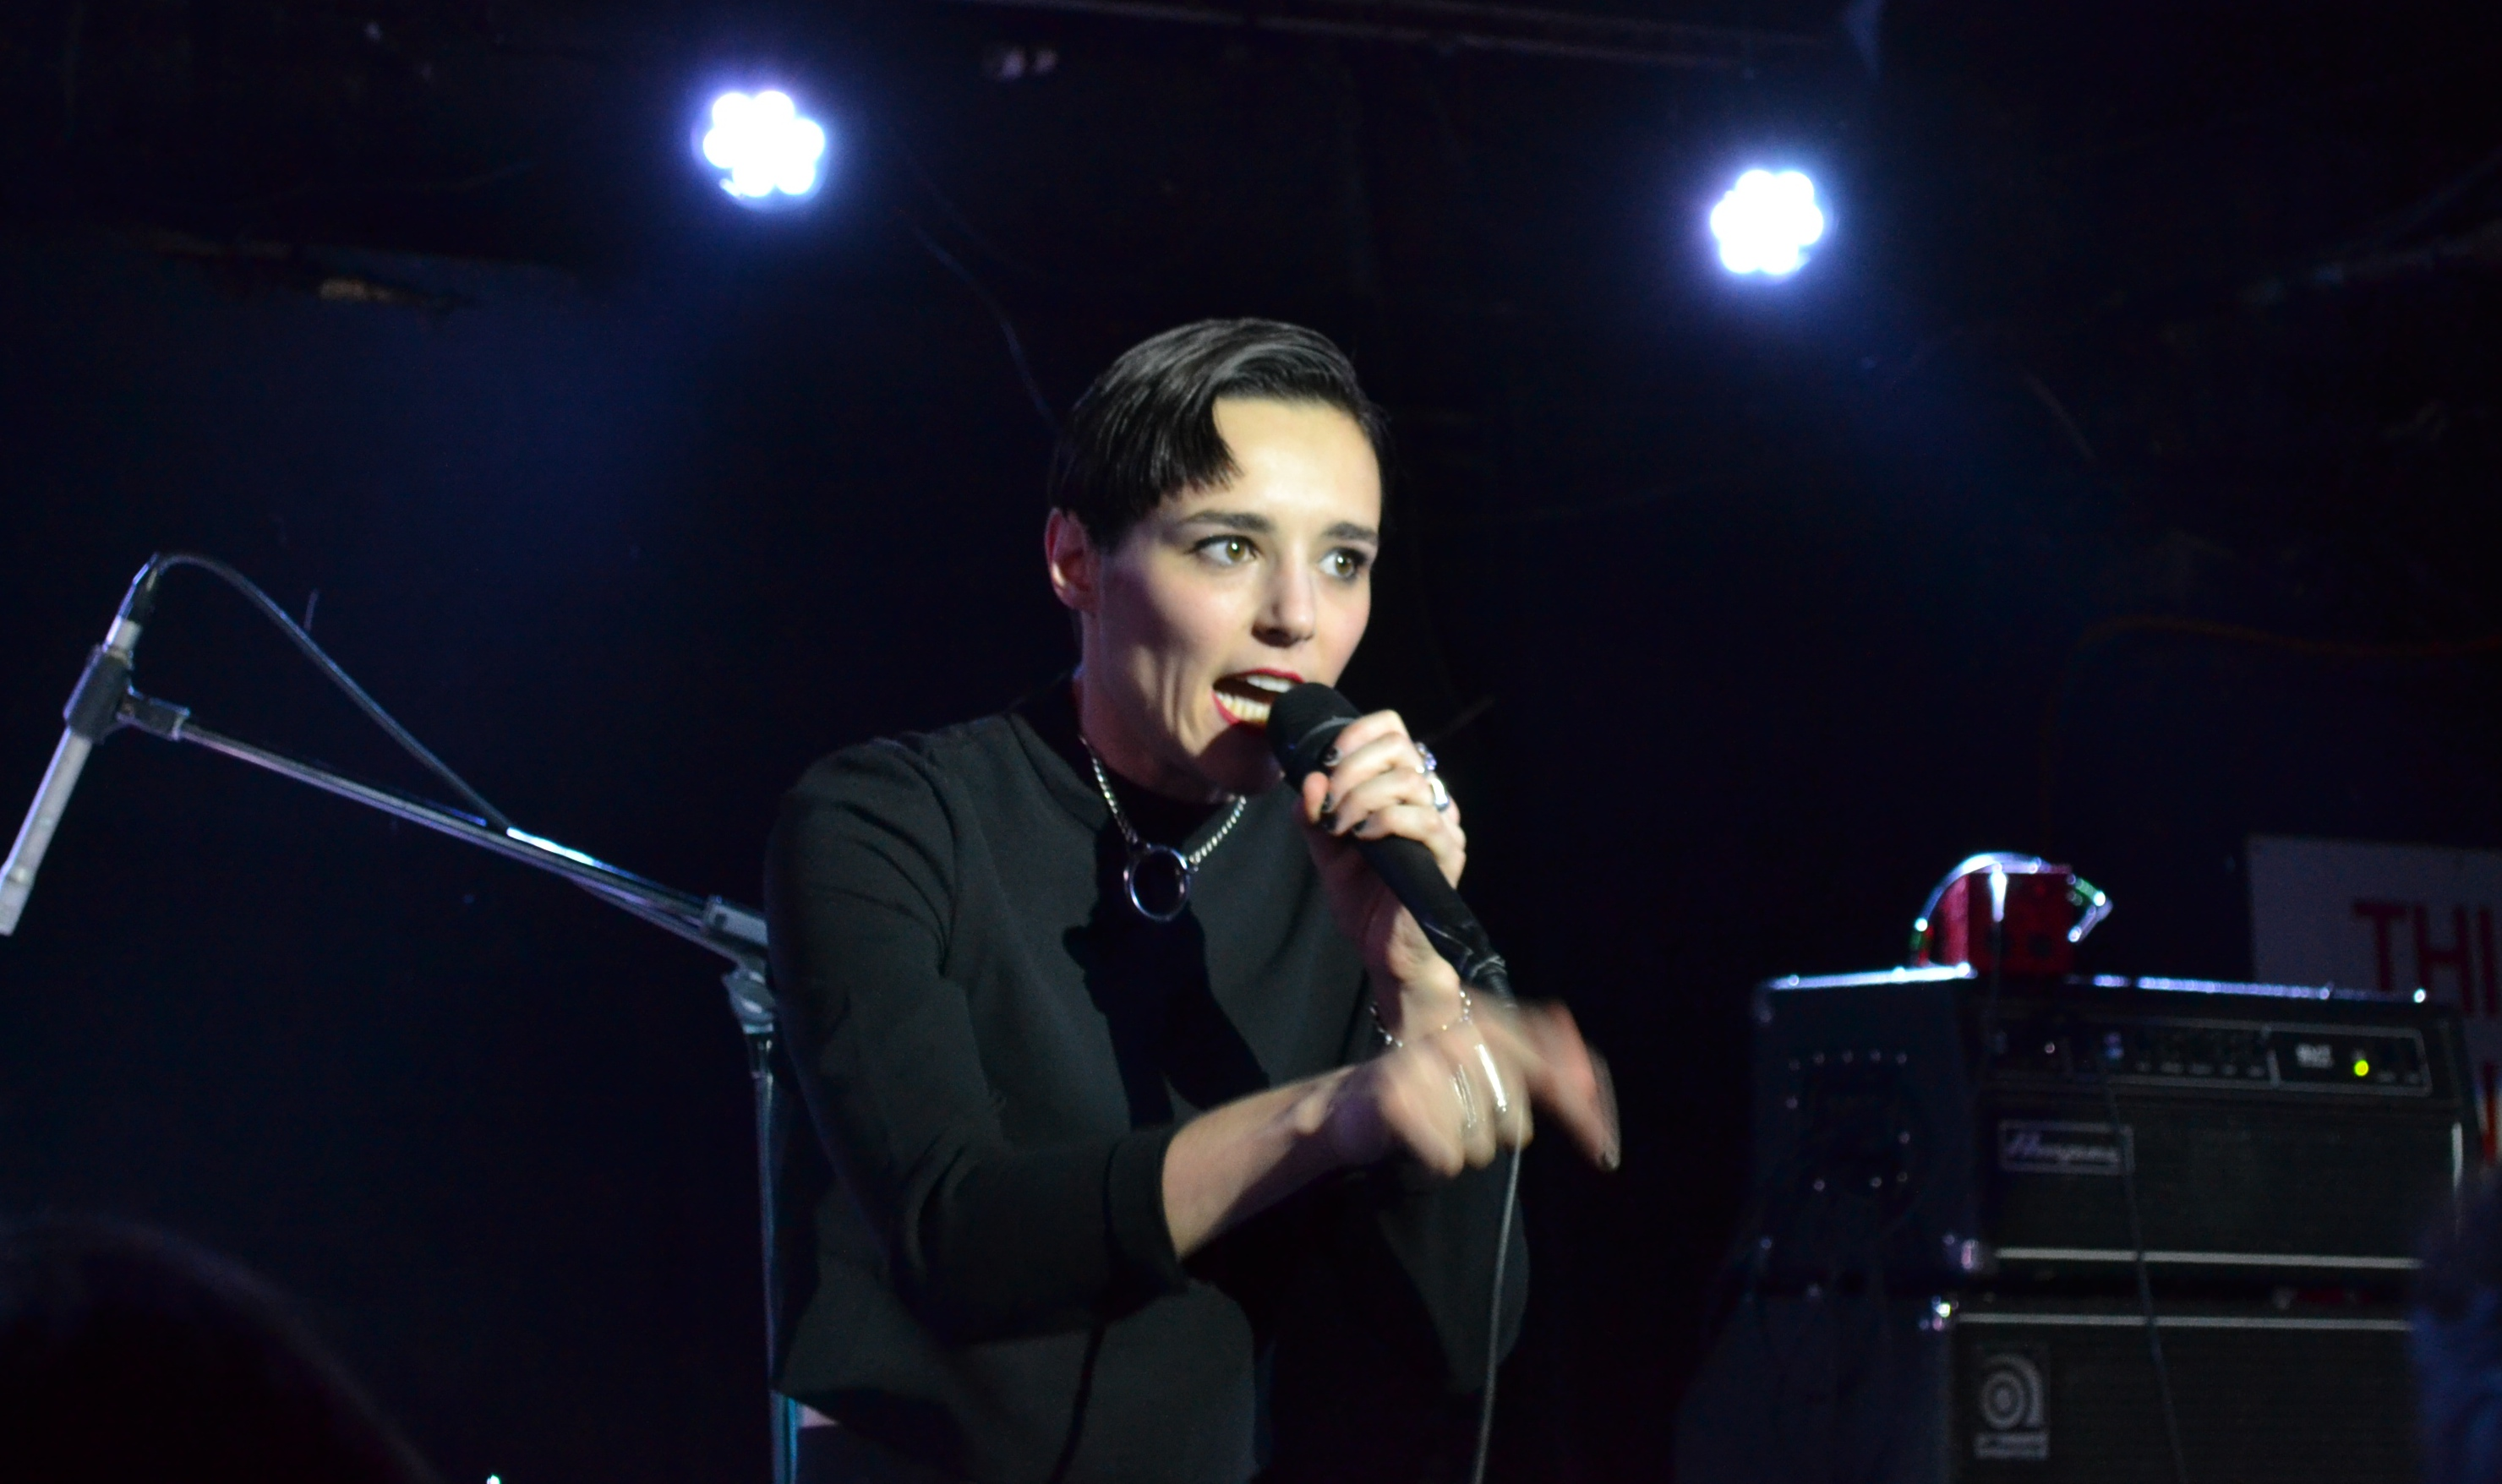 Savages Played New Material from their forthcoming album at their Second New York City show on Wednesday night at The Mercury Lounge.